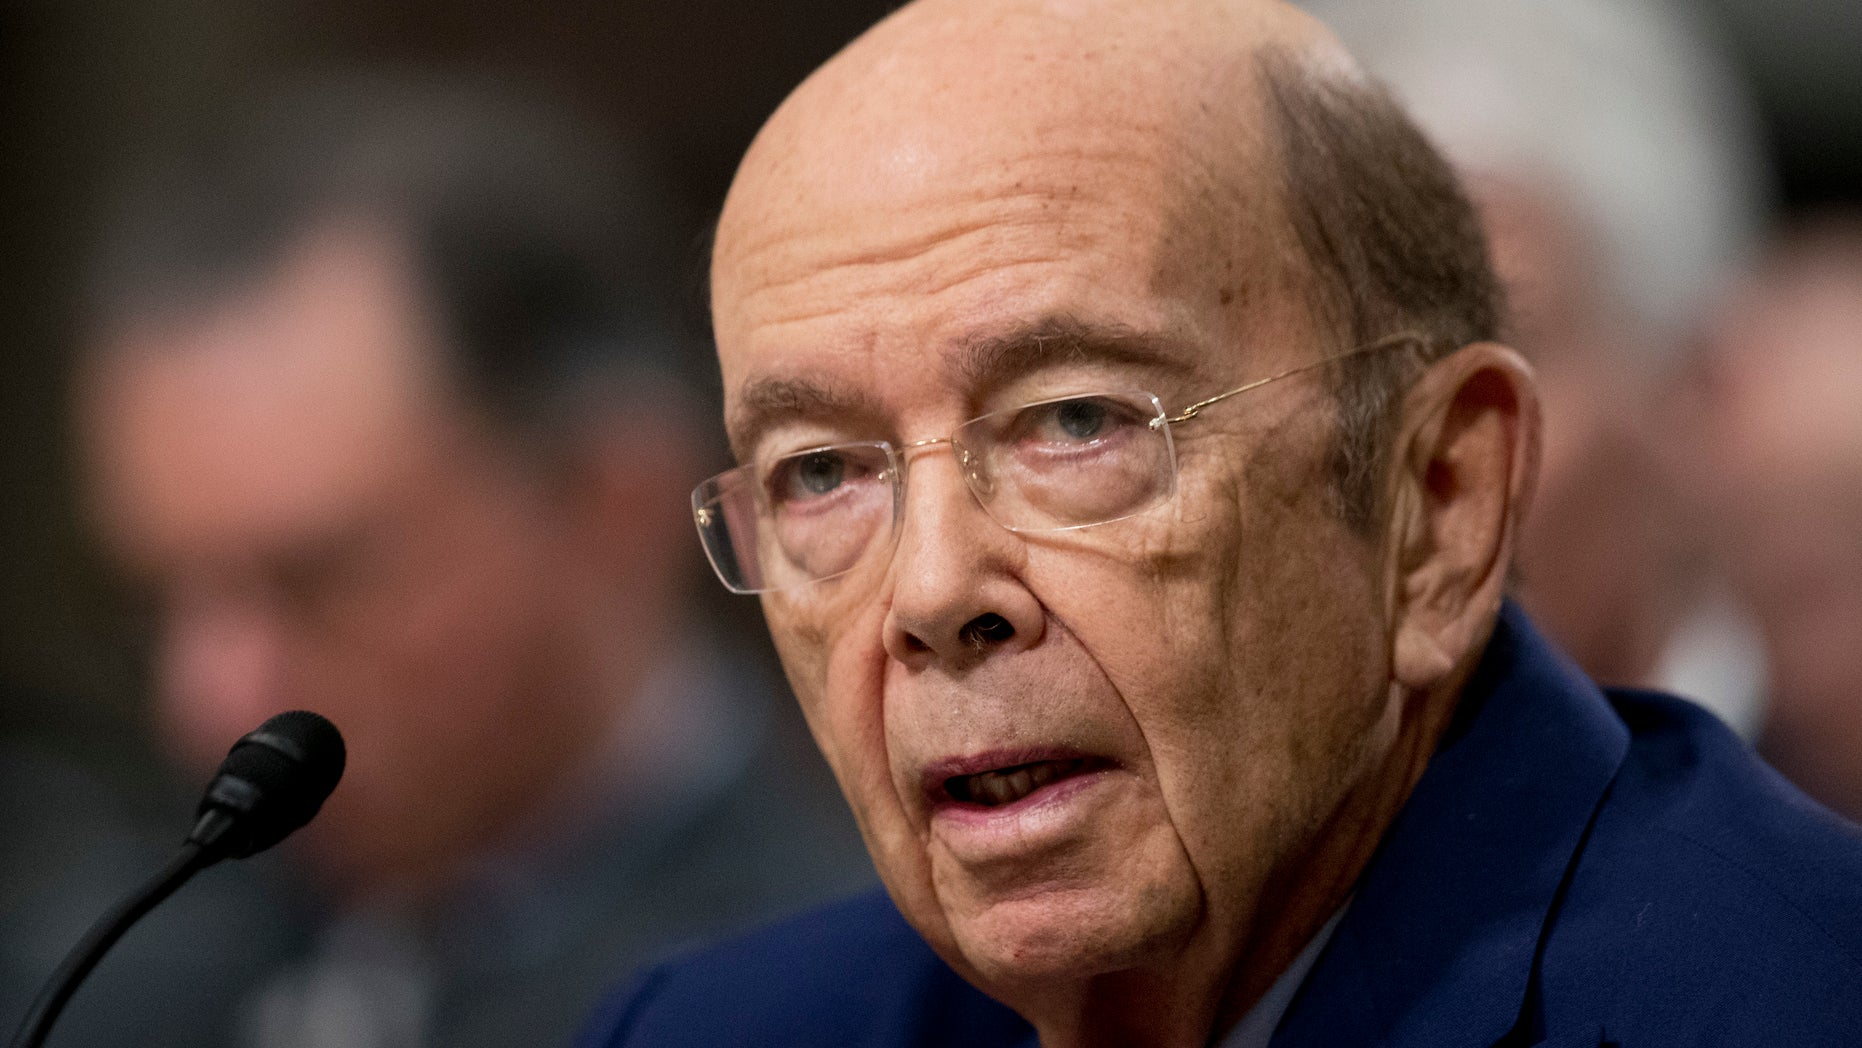 Commerce Secretary-designate Wilbur Ross testifies on Capitol Hill in Washington, Wednesday, Jan. 18, 2017, at his confirmation before the Senate Commerce Committee. (AP Photo/Manuel Balce Ceneta)